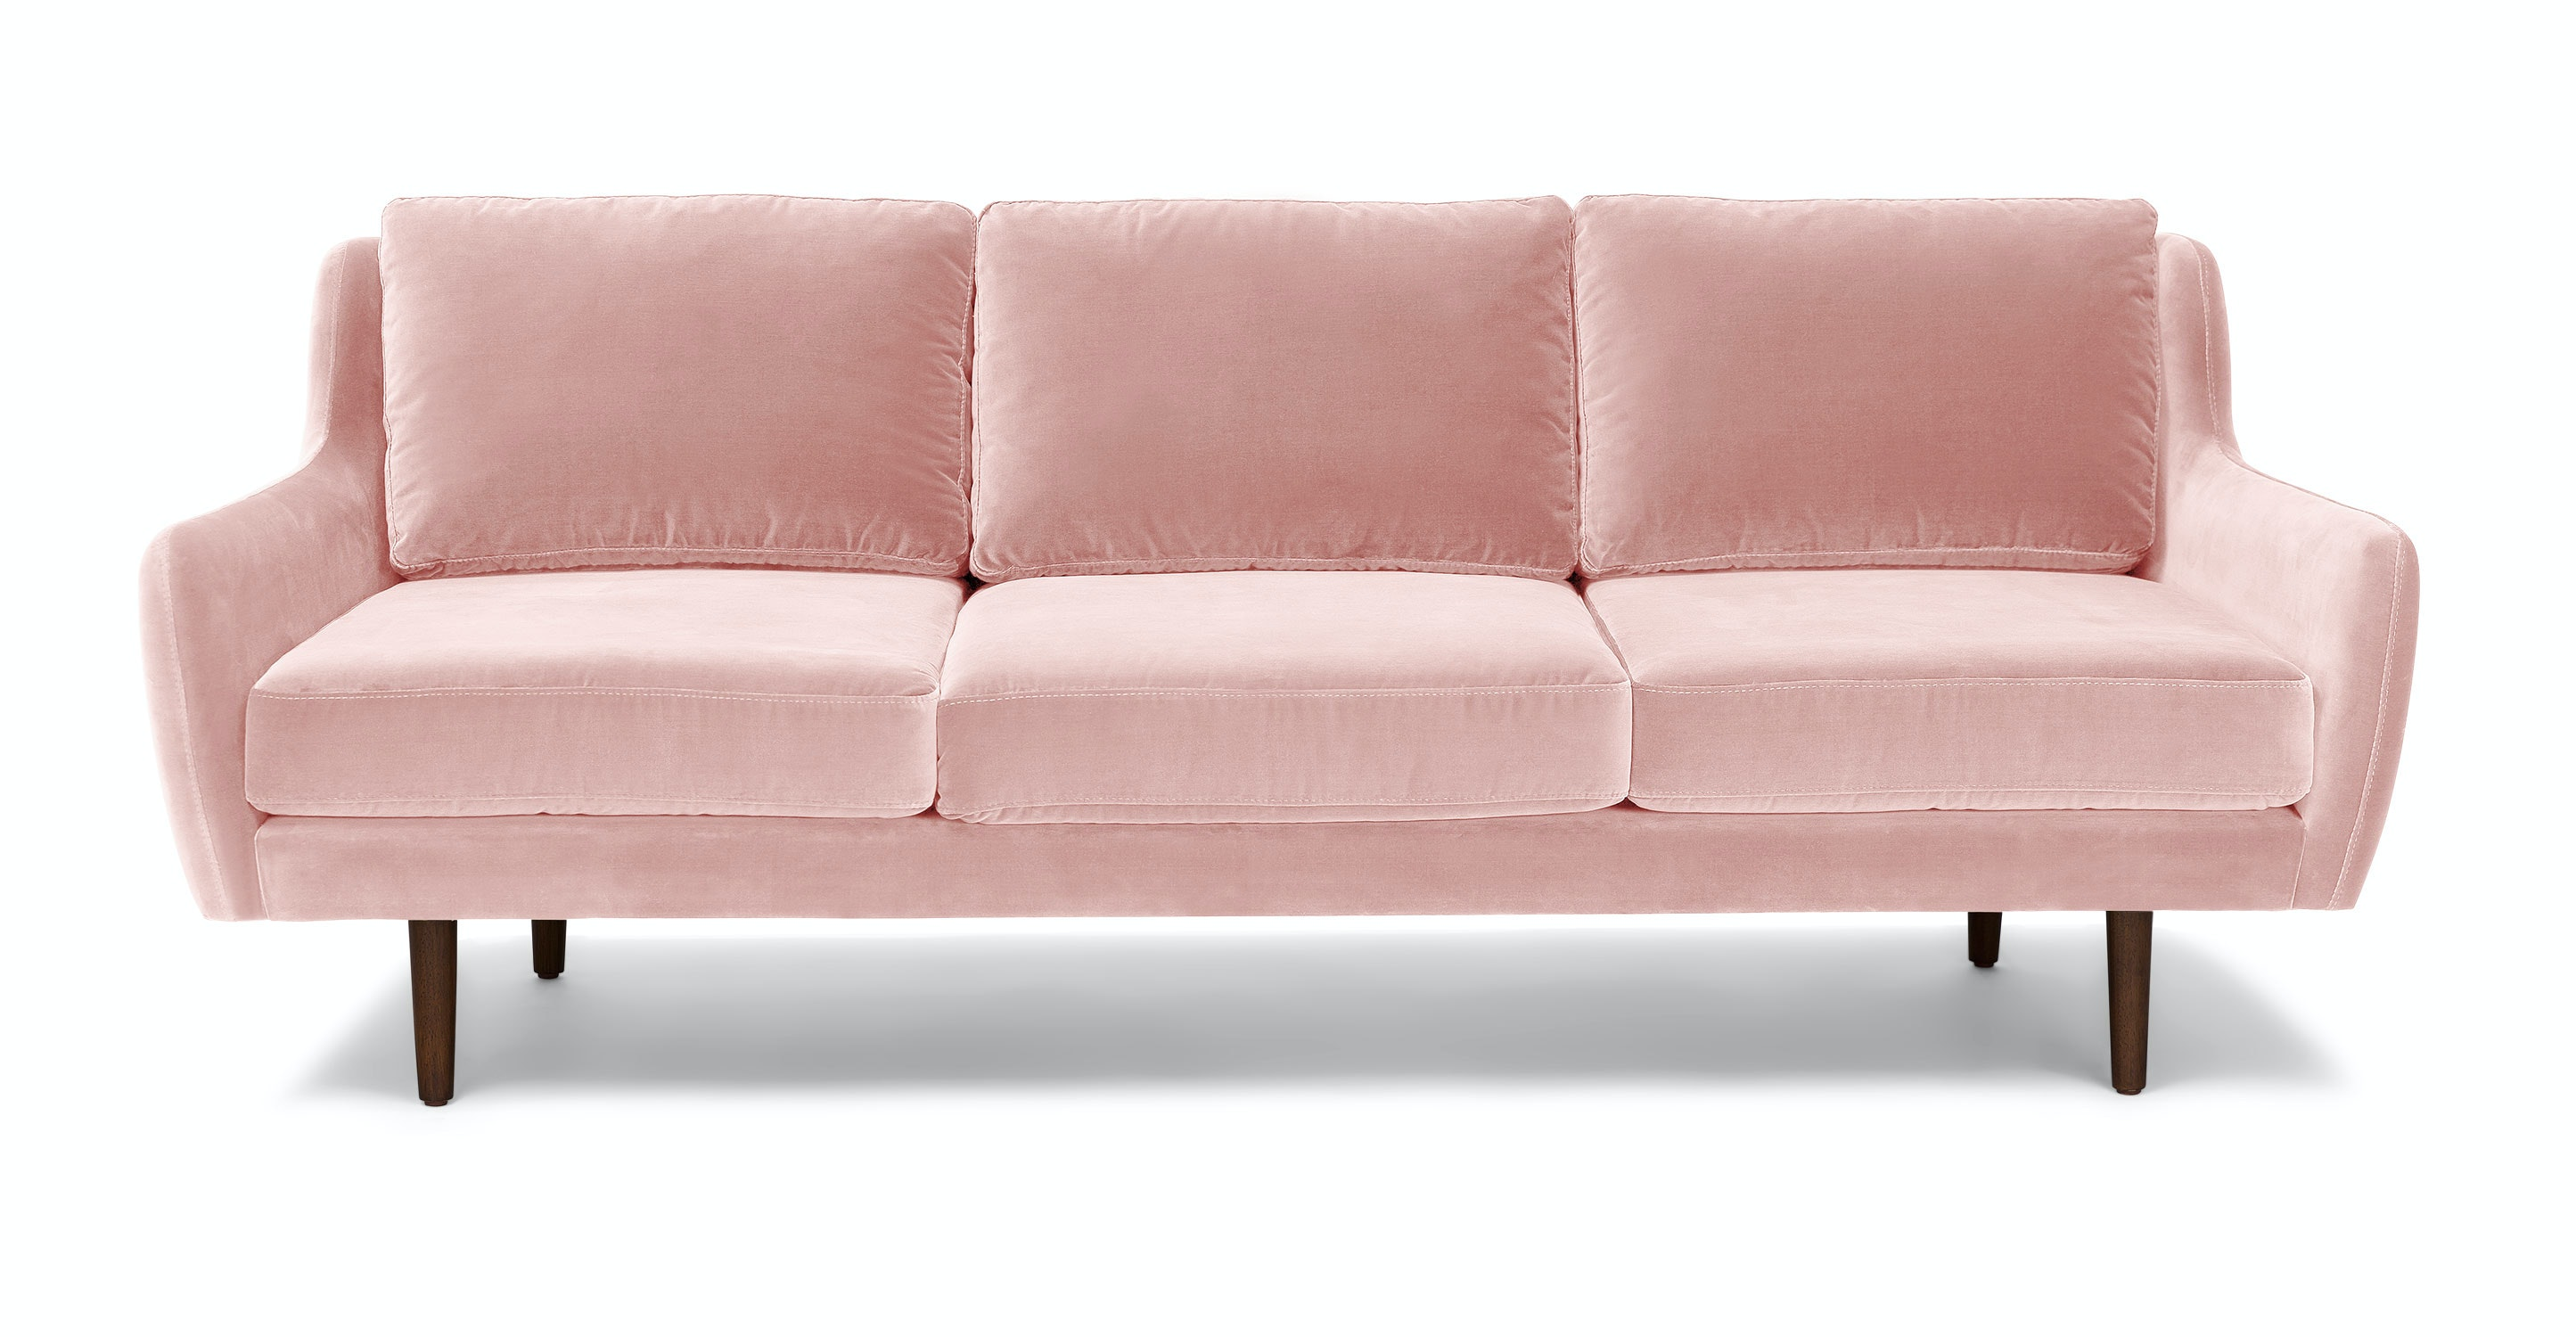 Matrix Blush Pink Sofa Sofas Article Modern Mid